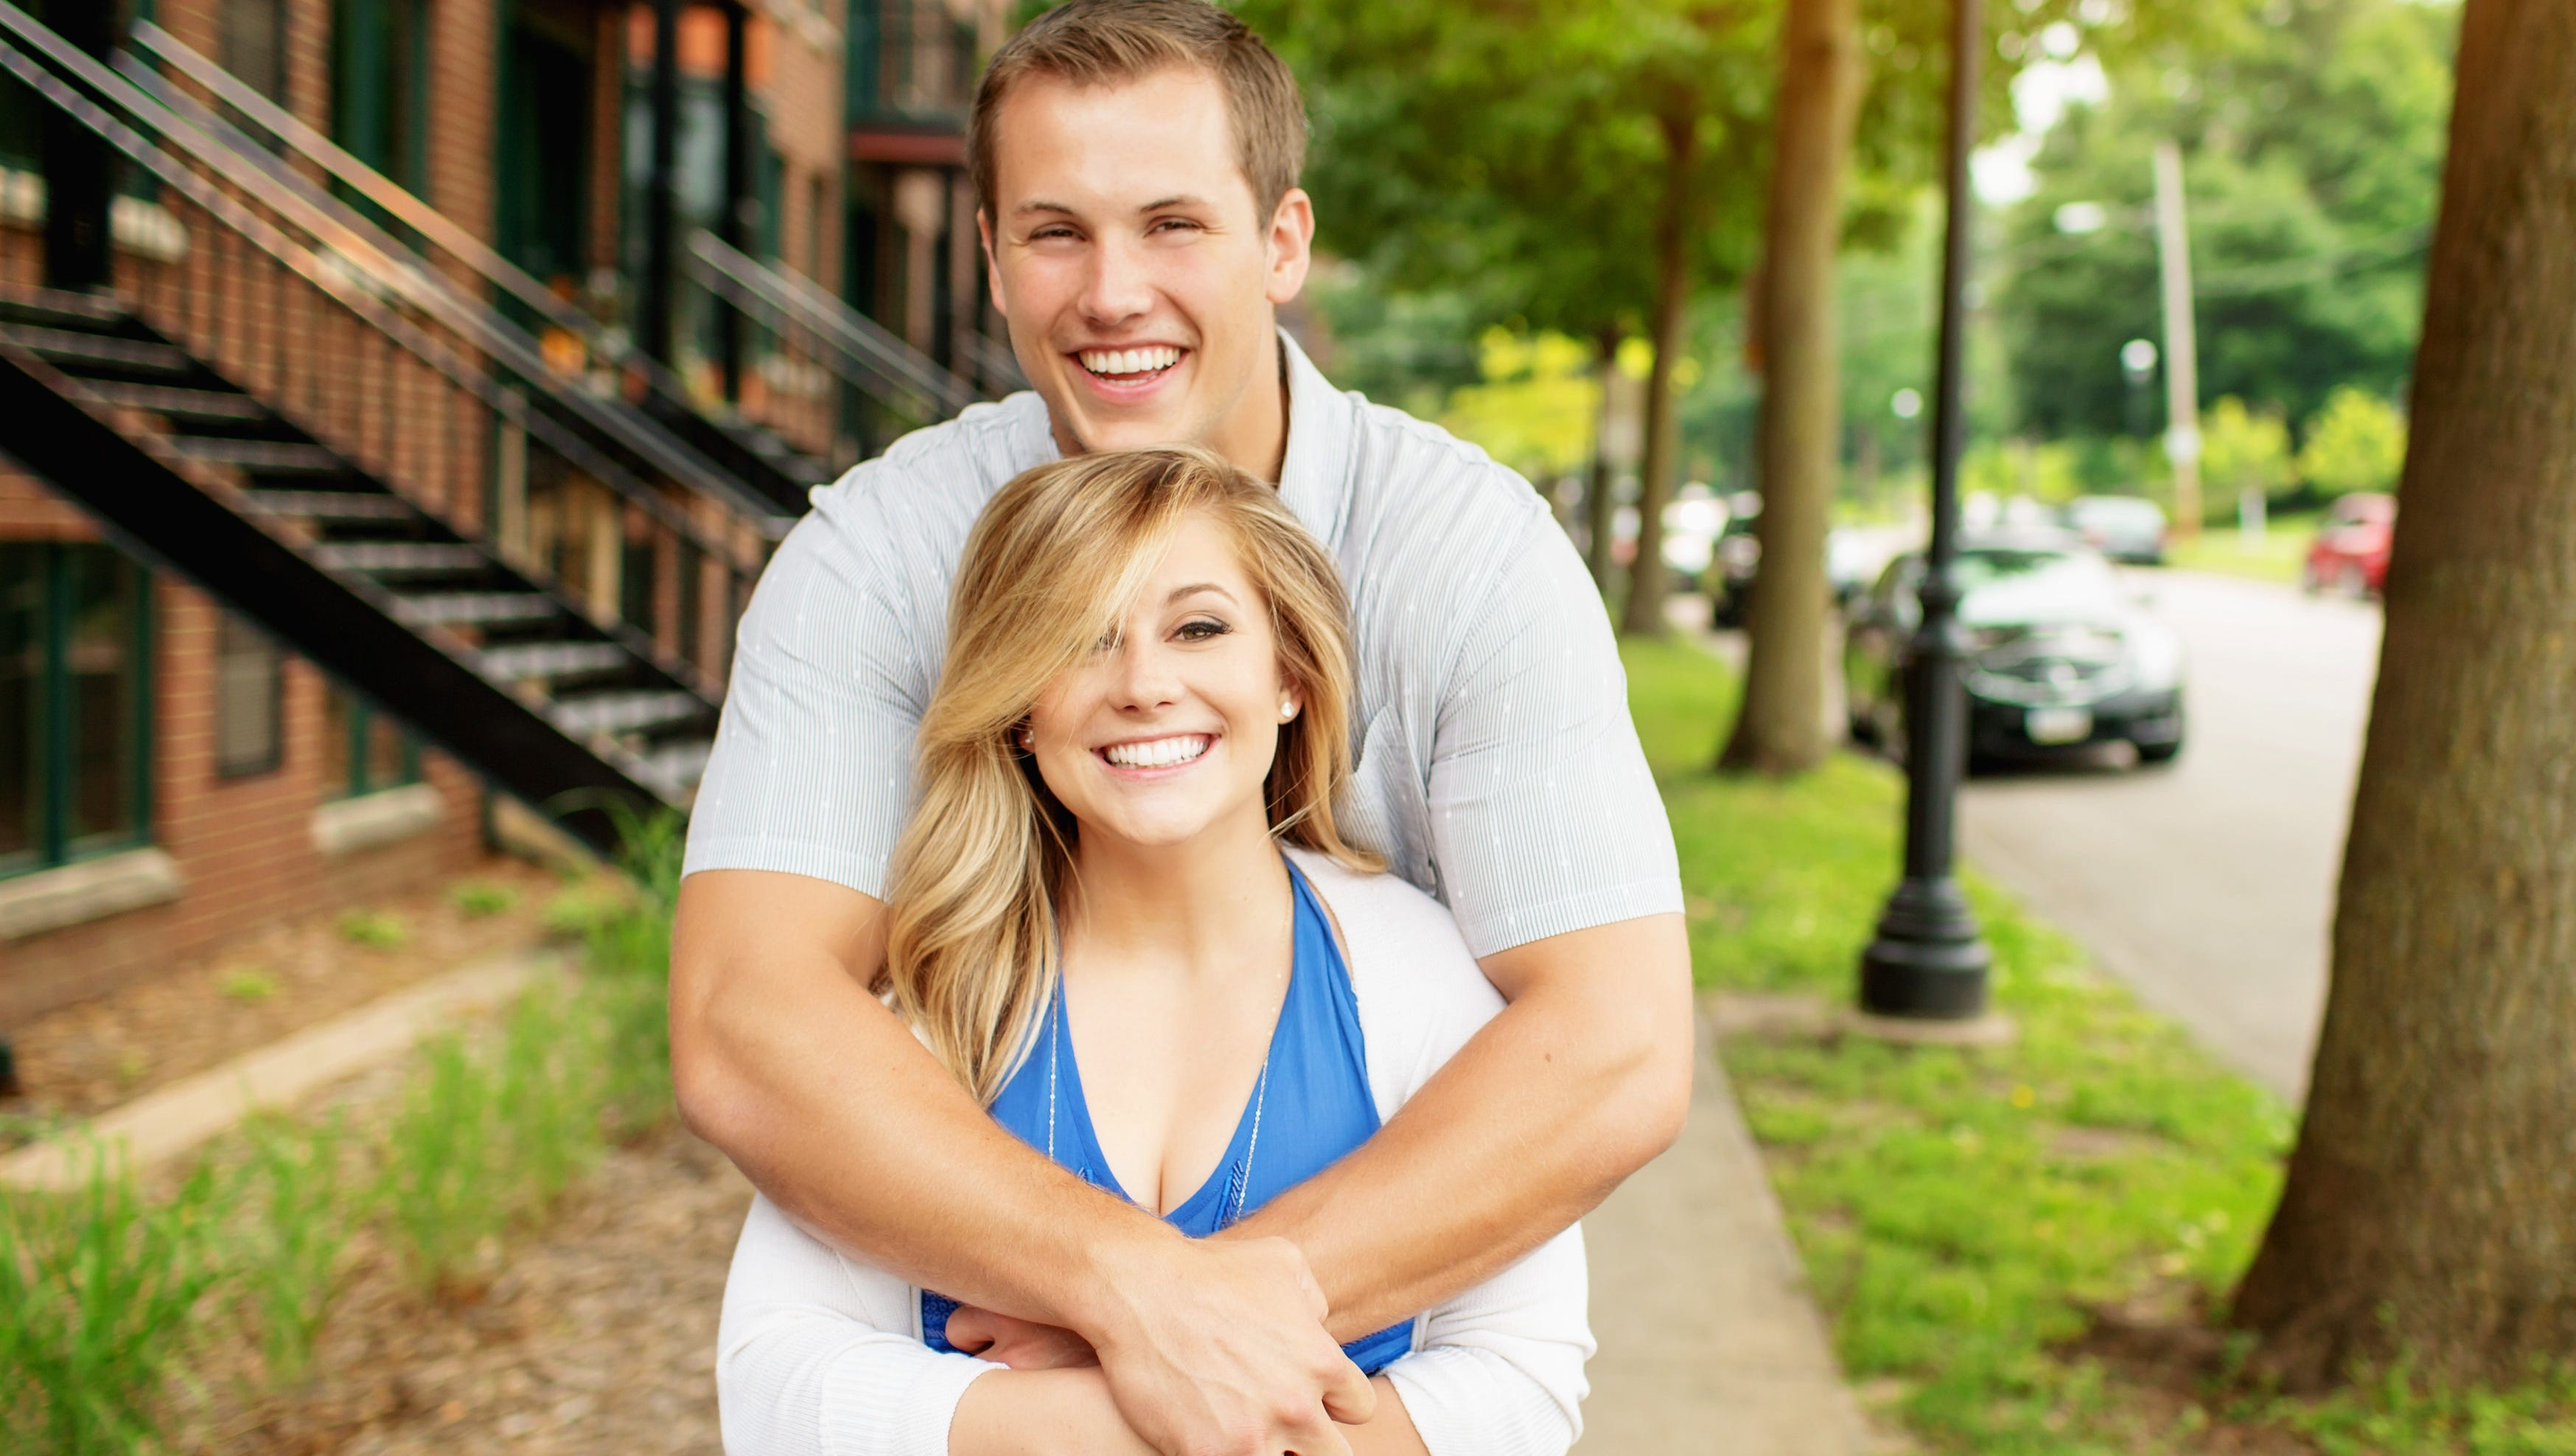 Shawn Johnson East and Andrew East Struggled with their Marriage After Having Kids, Felt Disconnected